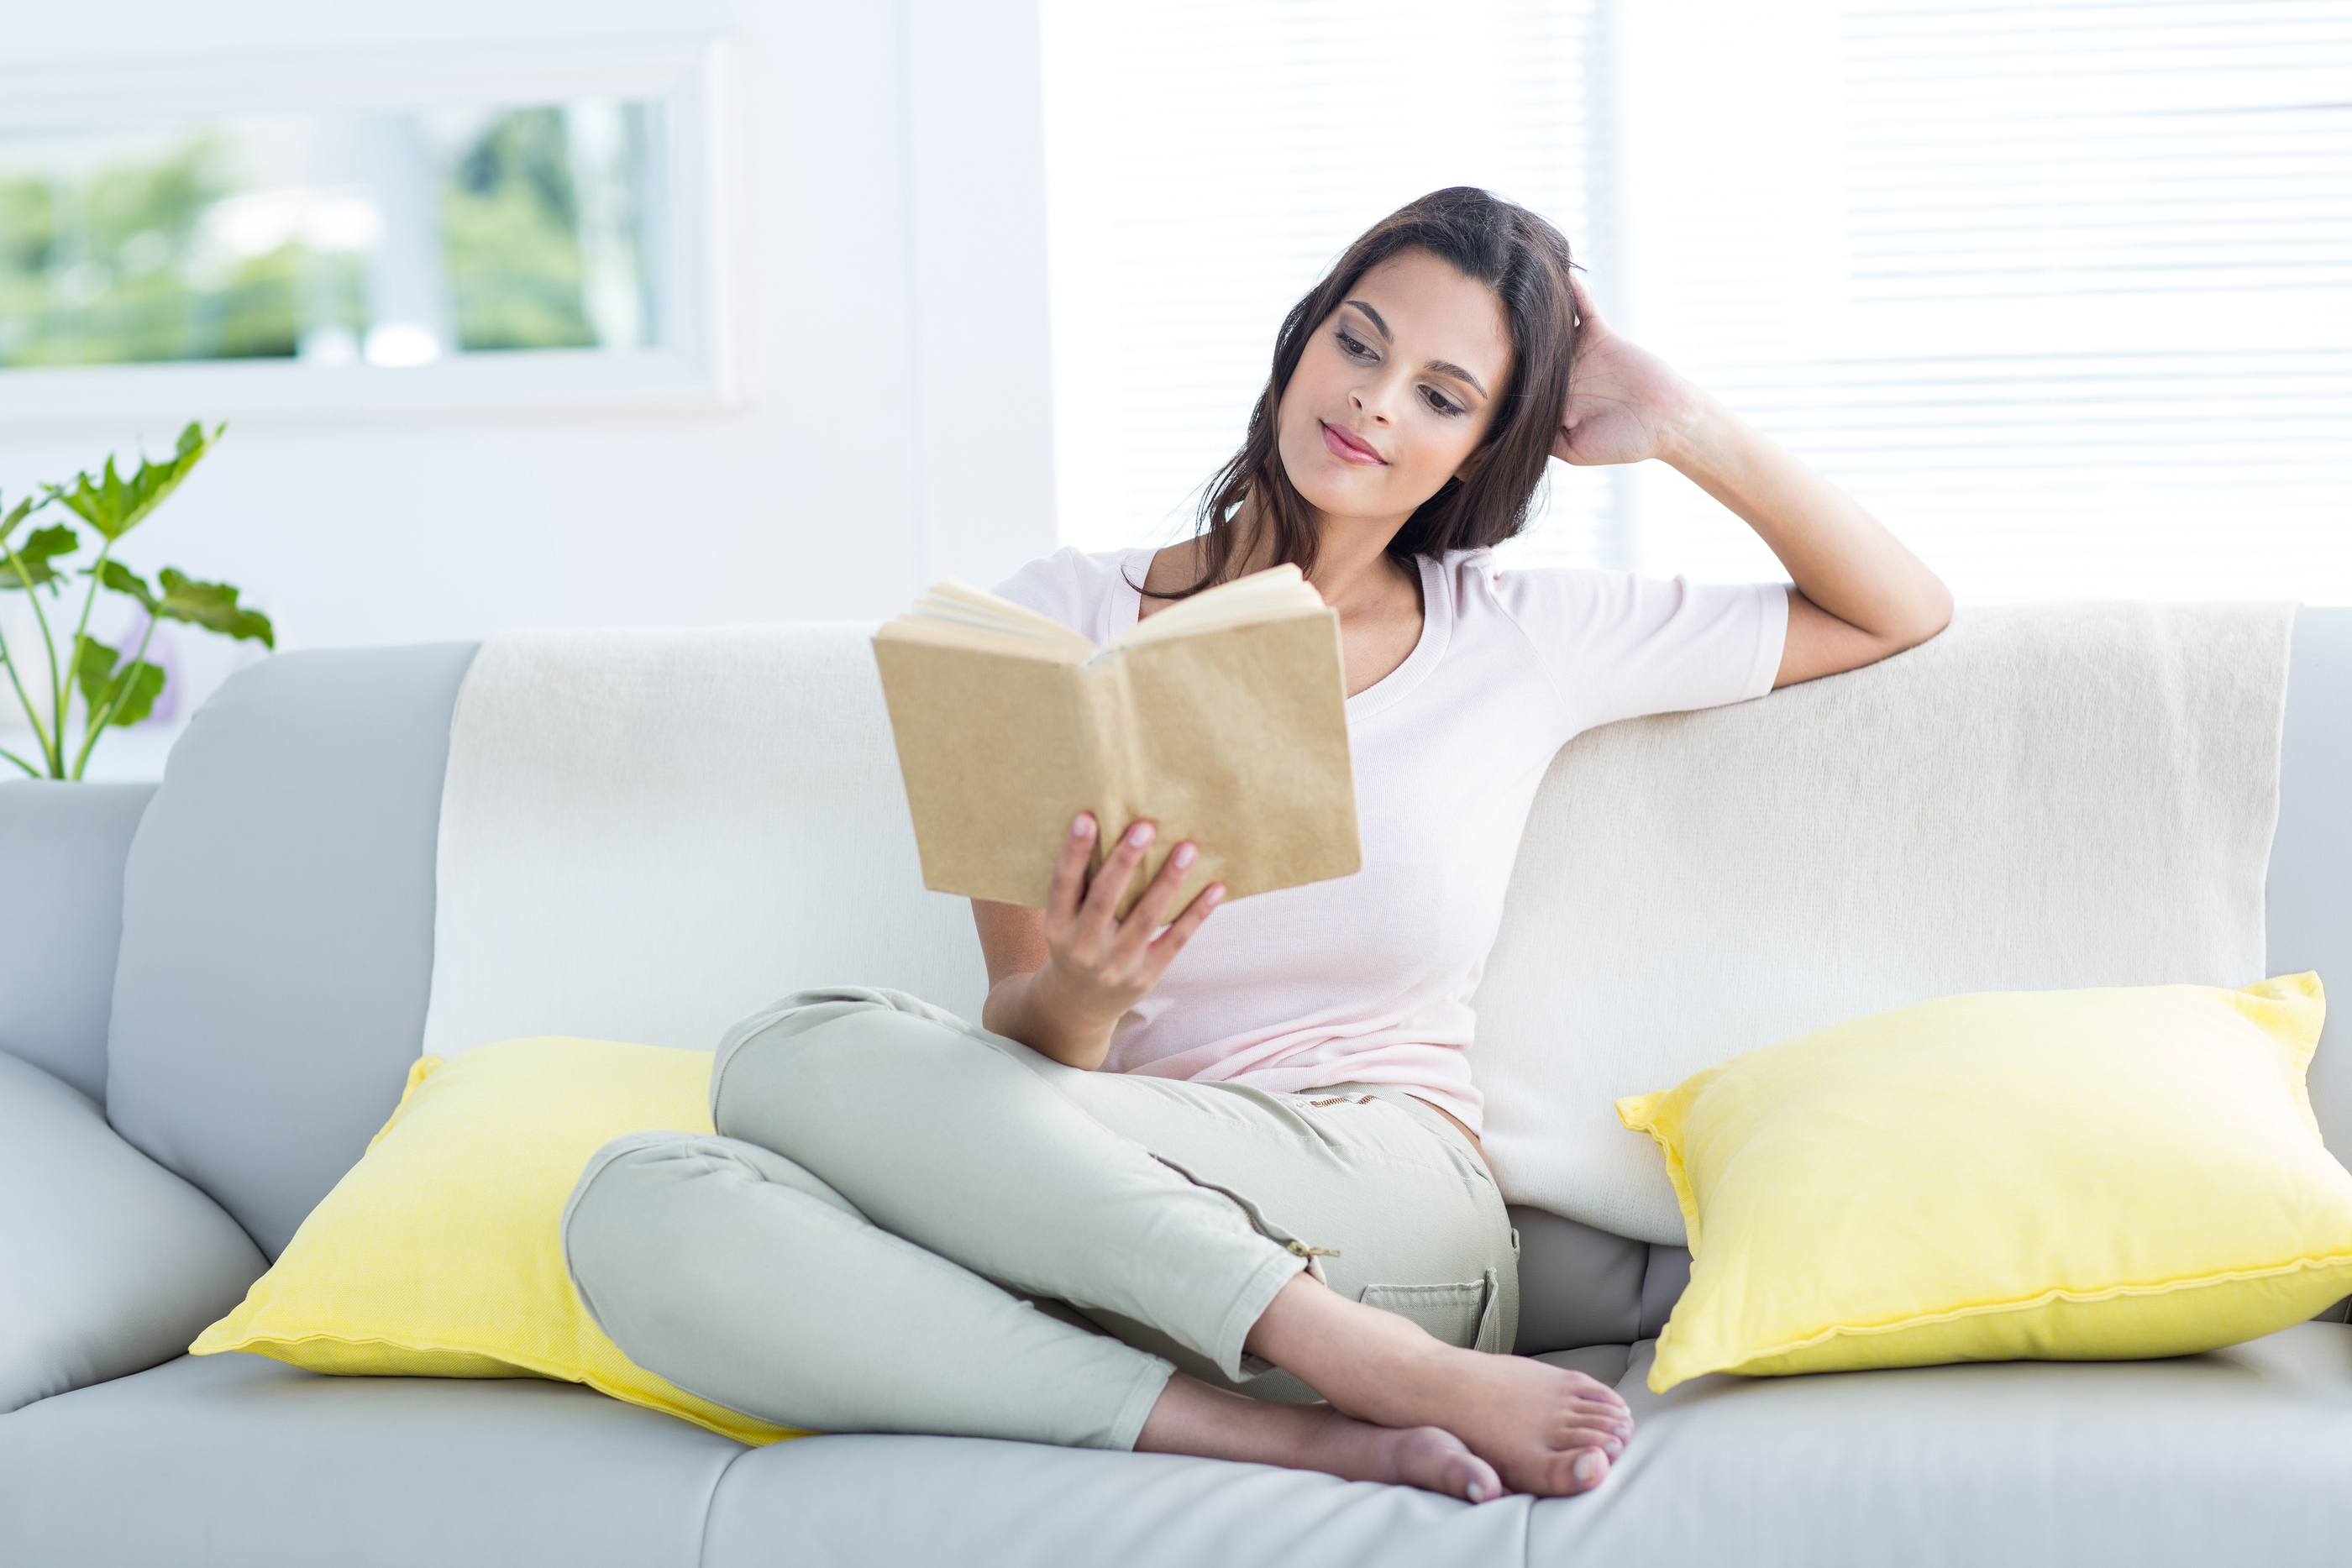 Smiling beautiful brunette relaxing and reading a book on the couch in the living room